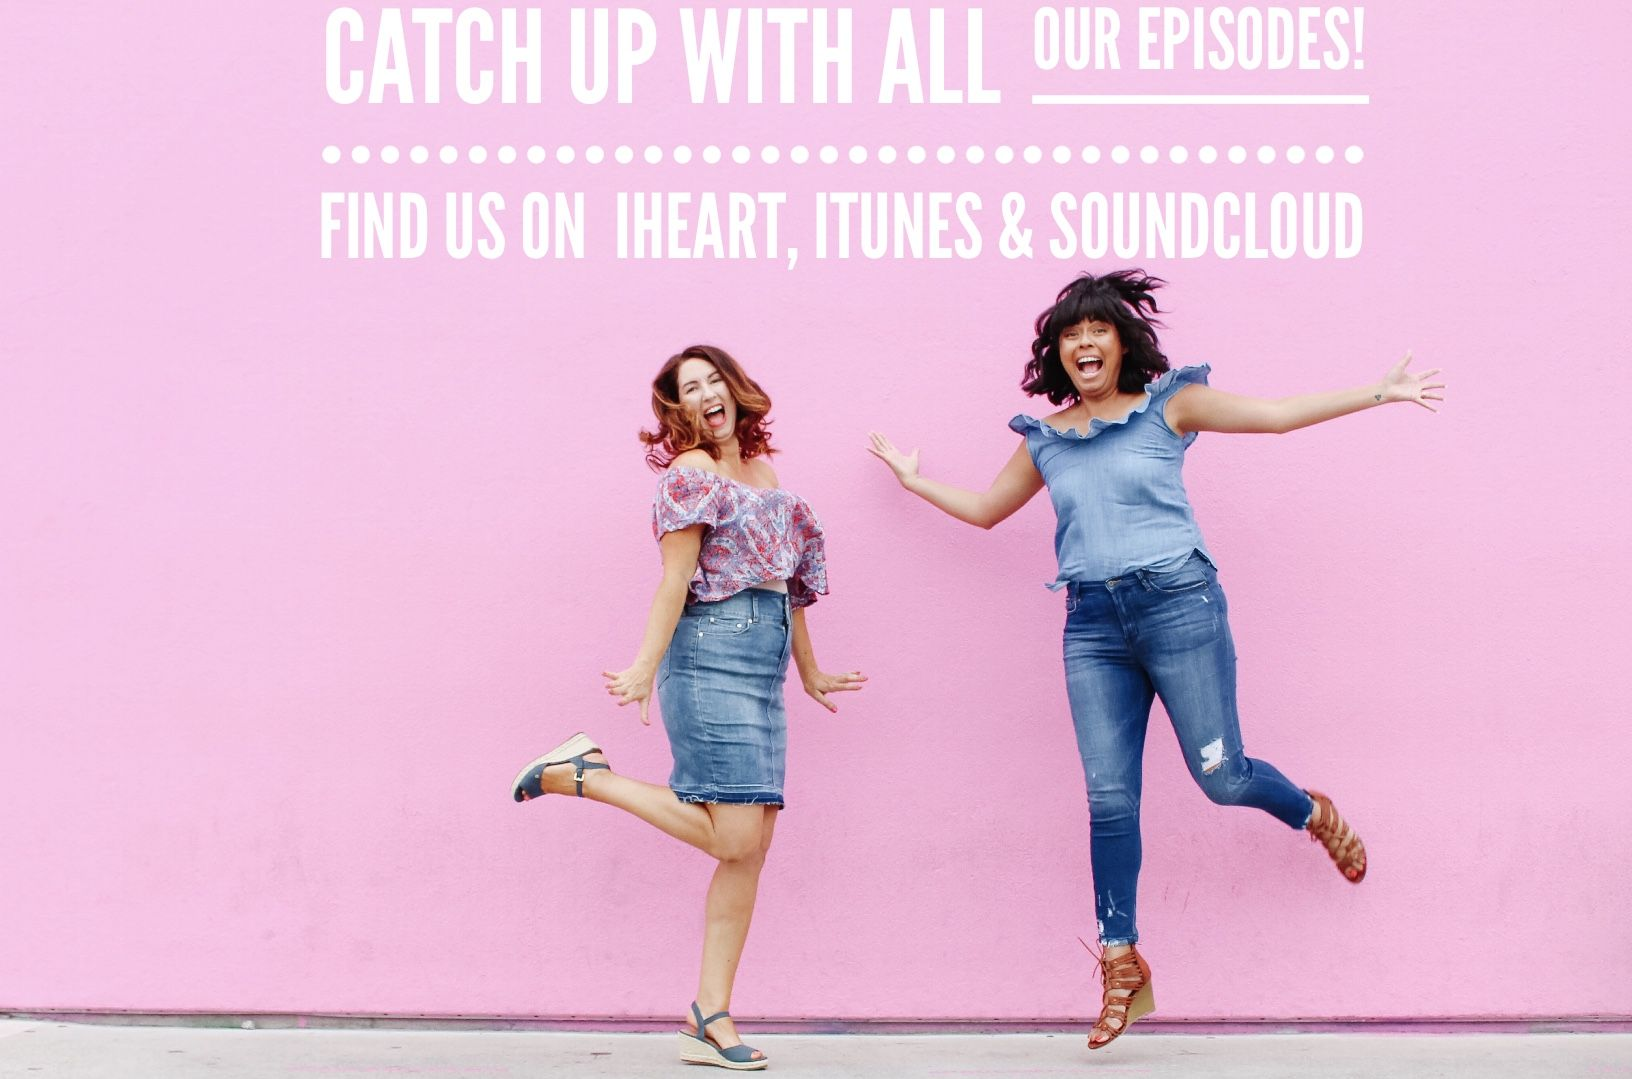 Follow us on iHeart, ITunes and SoundCloud